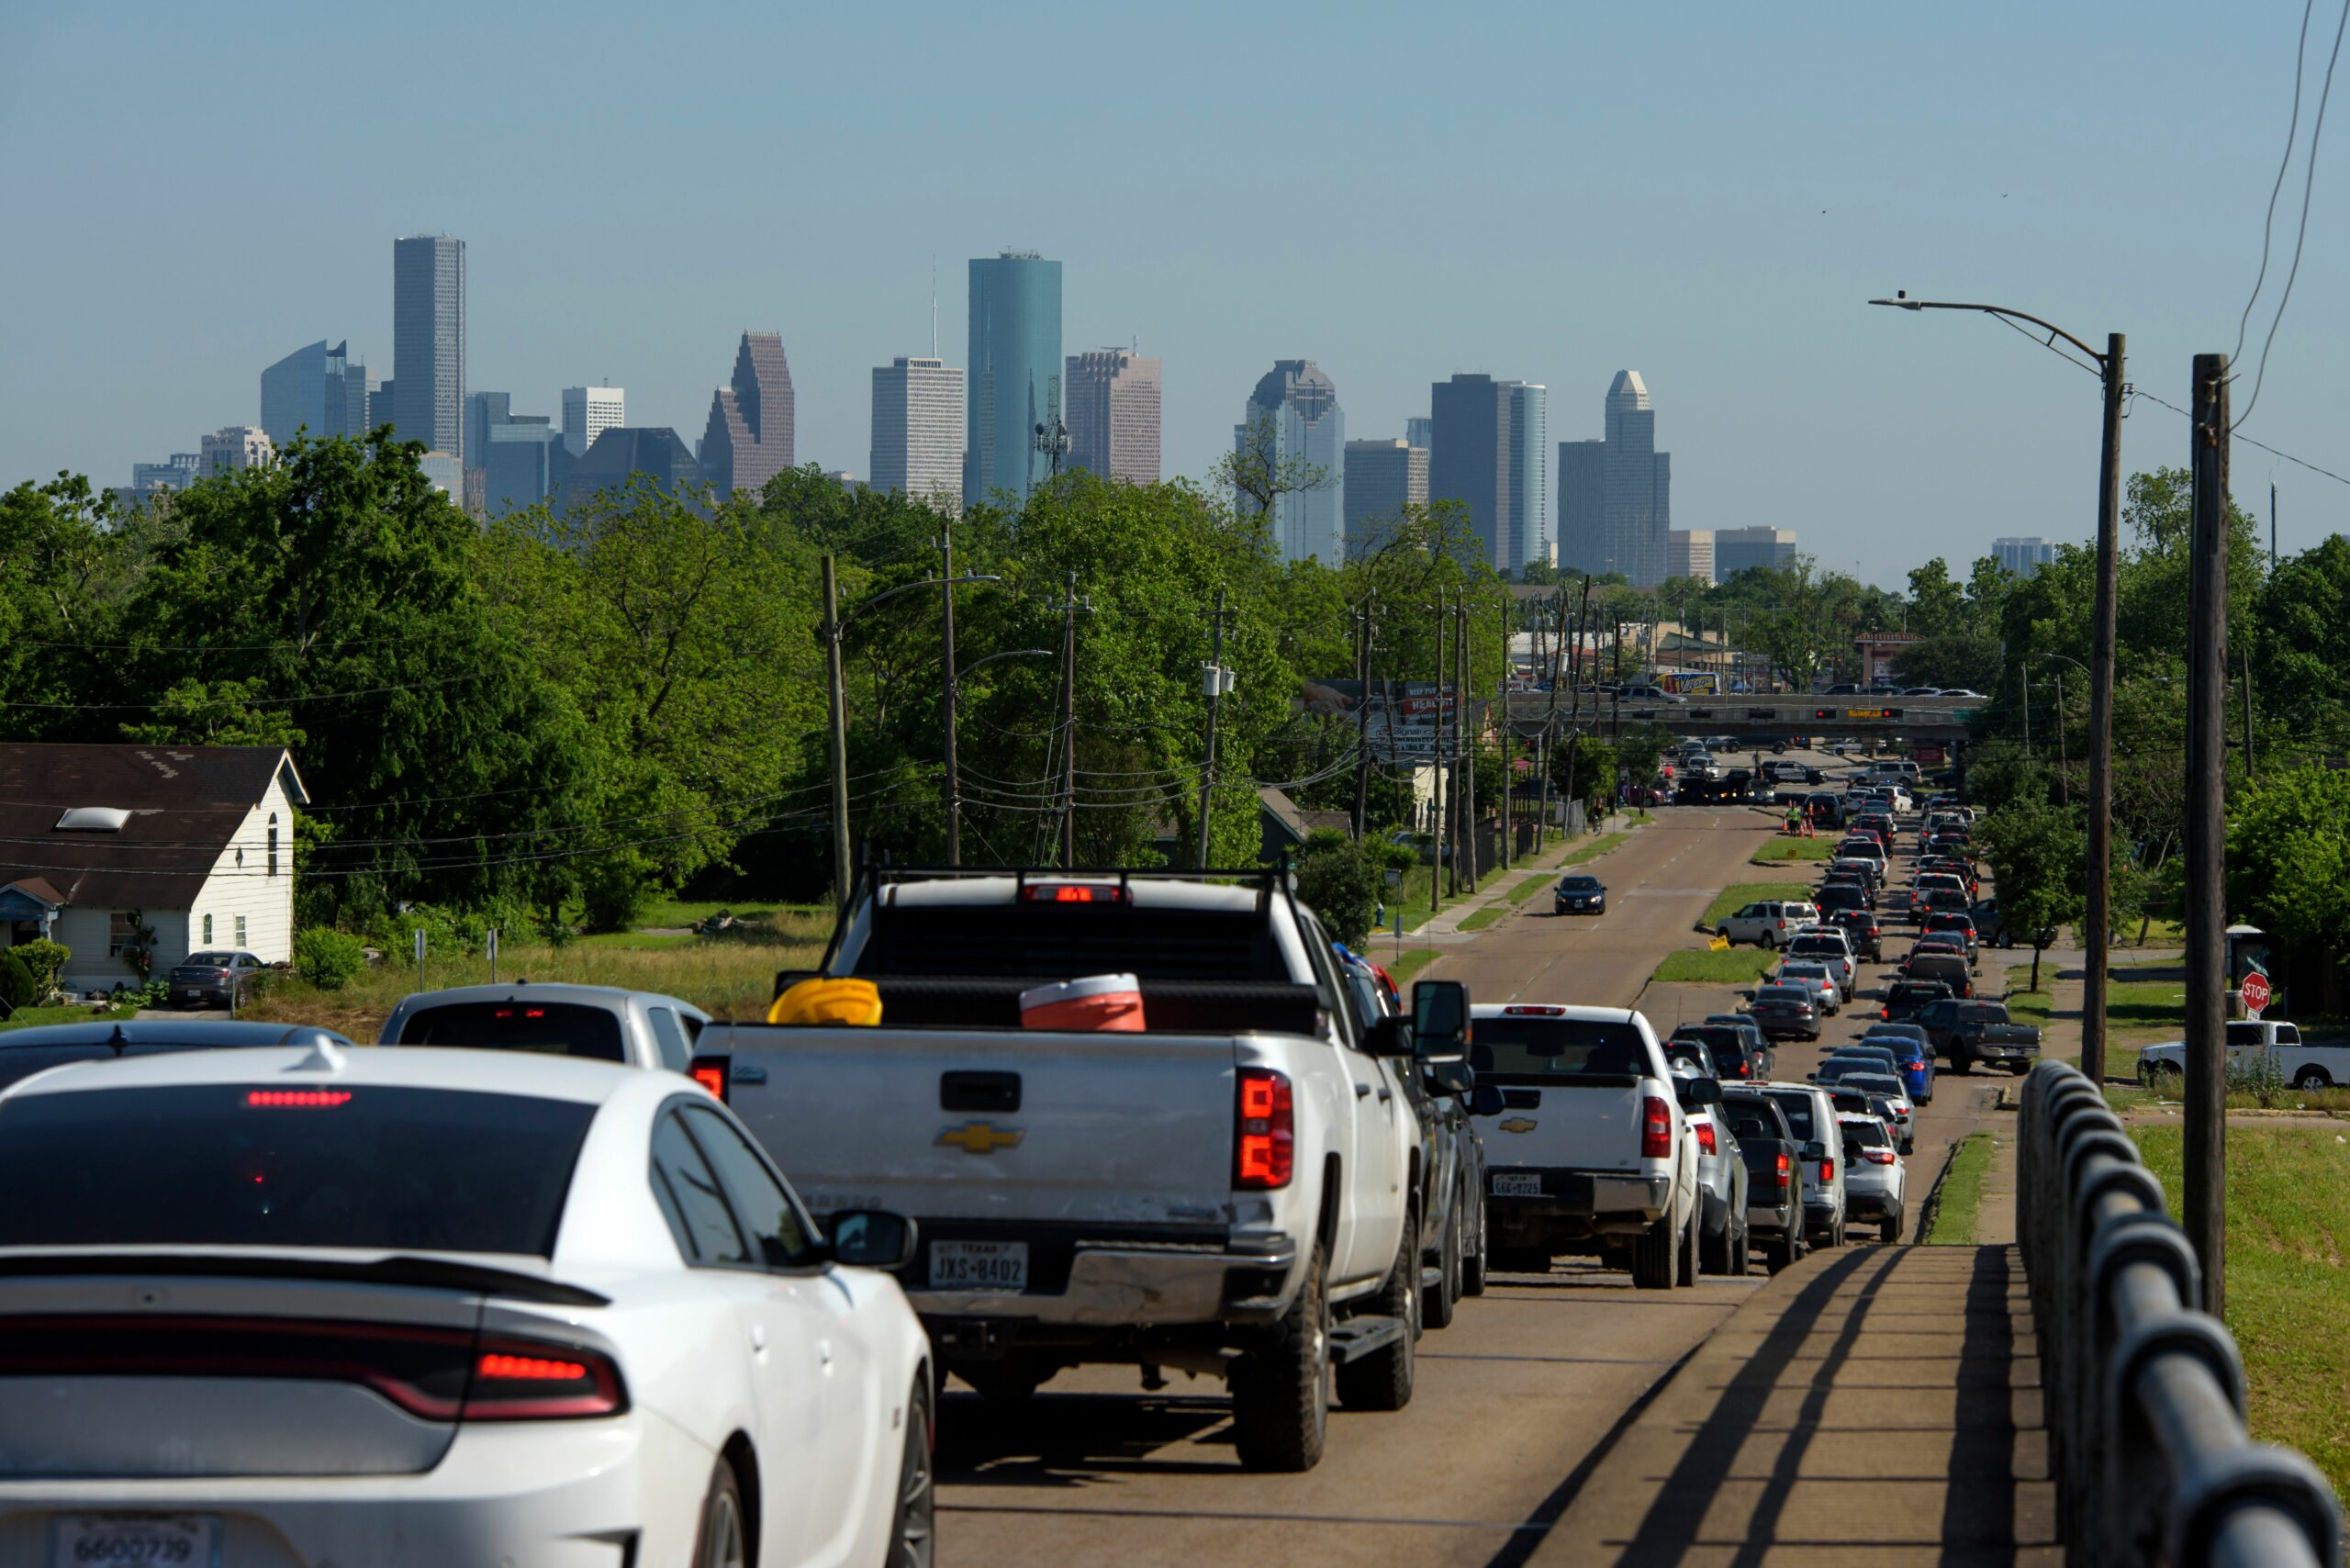 Cars are lined up in traffic on Airline Drive after a food distribution site at Reyes Produce opened on April 13, 2020 in Houston, Texas. Credit: Mark Felix / AFP via Getty Images